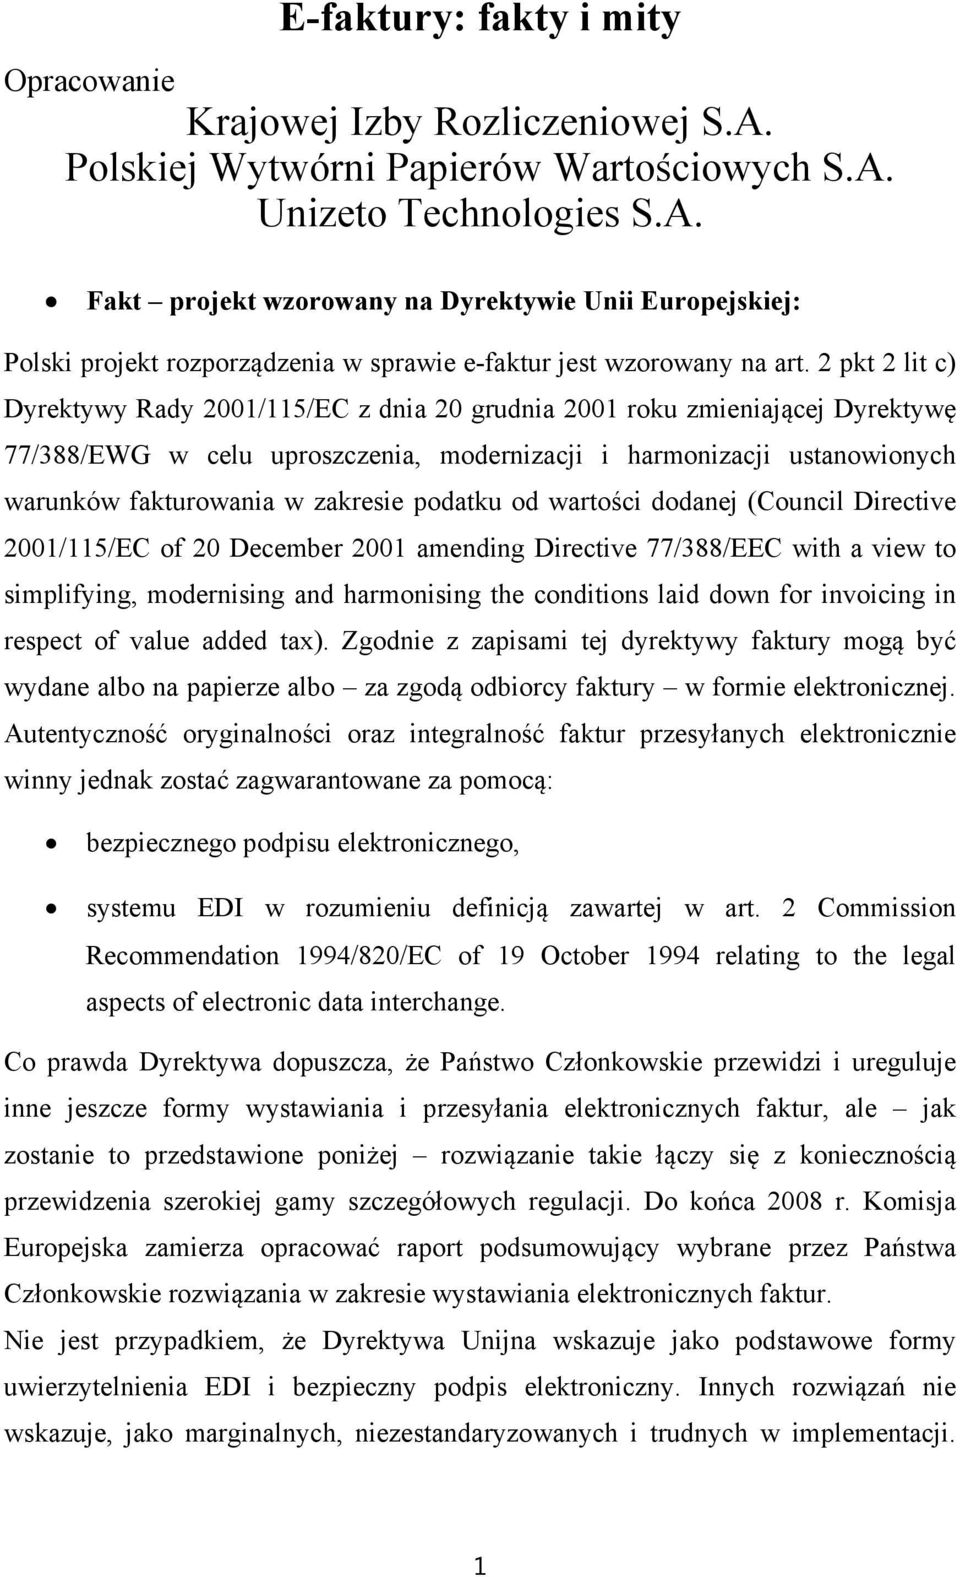 podatku od wartości dodanej (Council Directive 2001/115/EC of 20 December 2001 amending Directive 77/388/EEC with a view to simplifying, modernising and harmonising the conditions laid down for